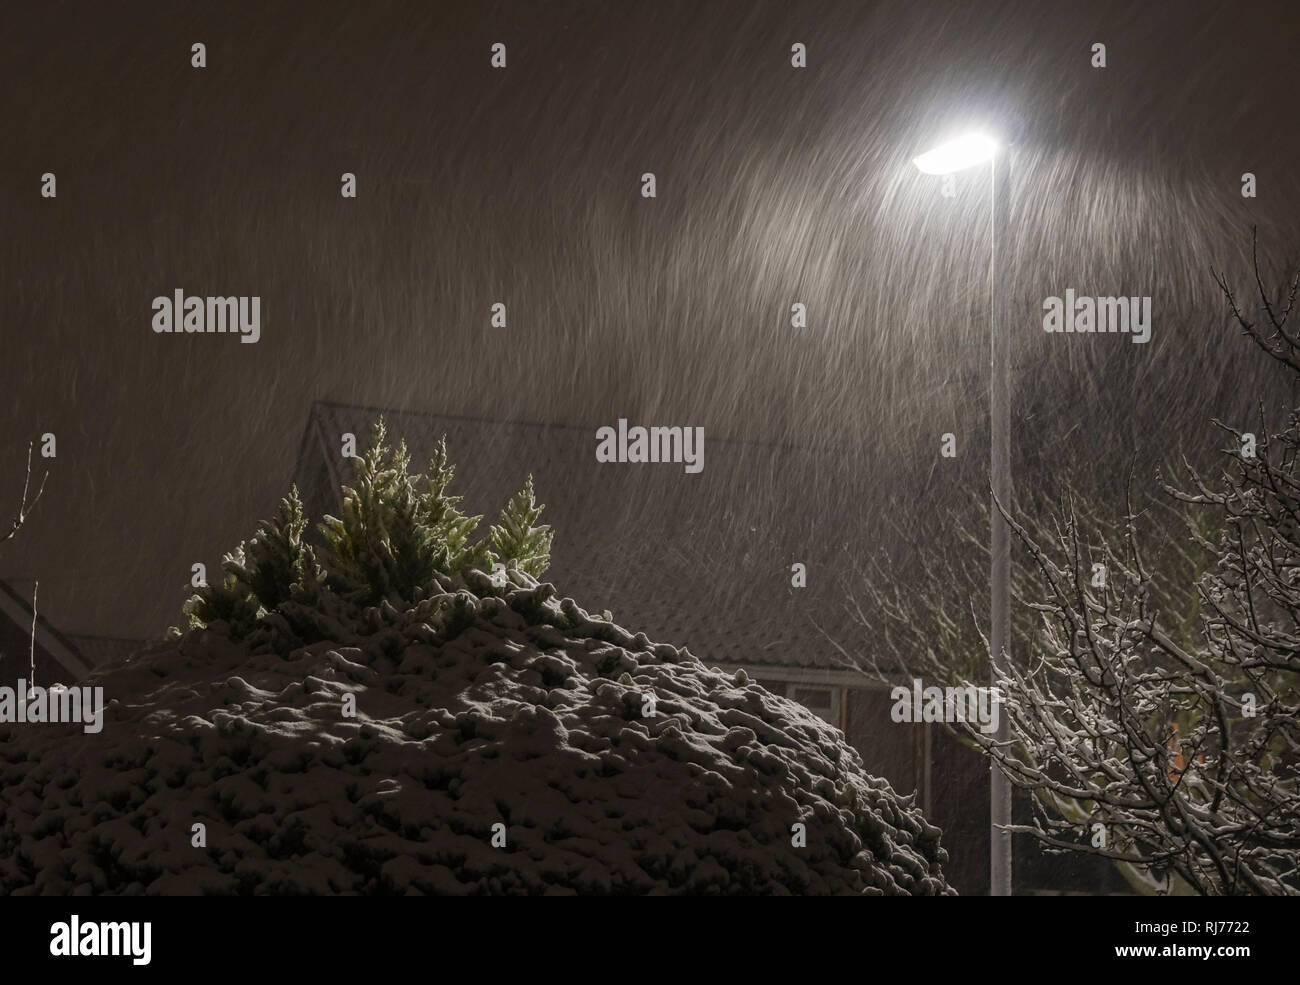 Falling snow by a lamppost at night. Long shutter blurred effect of it snowing in the dark. - Stock Image